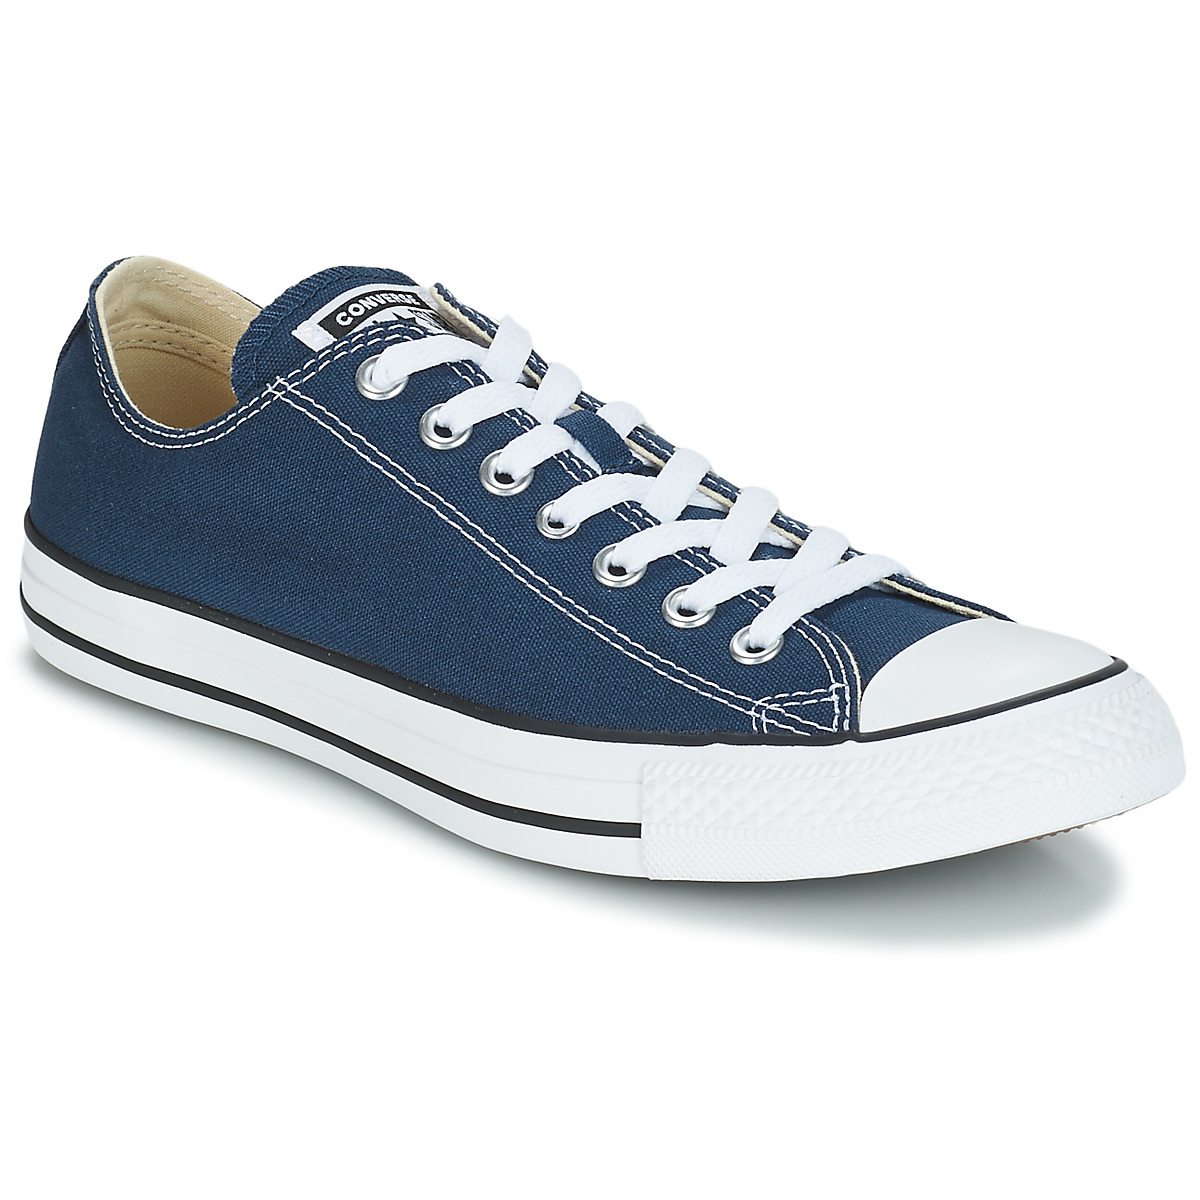 Converse ALL STAR CORE OX Navy